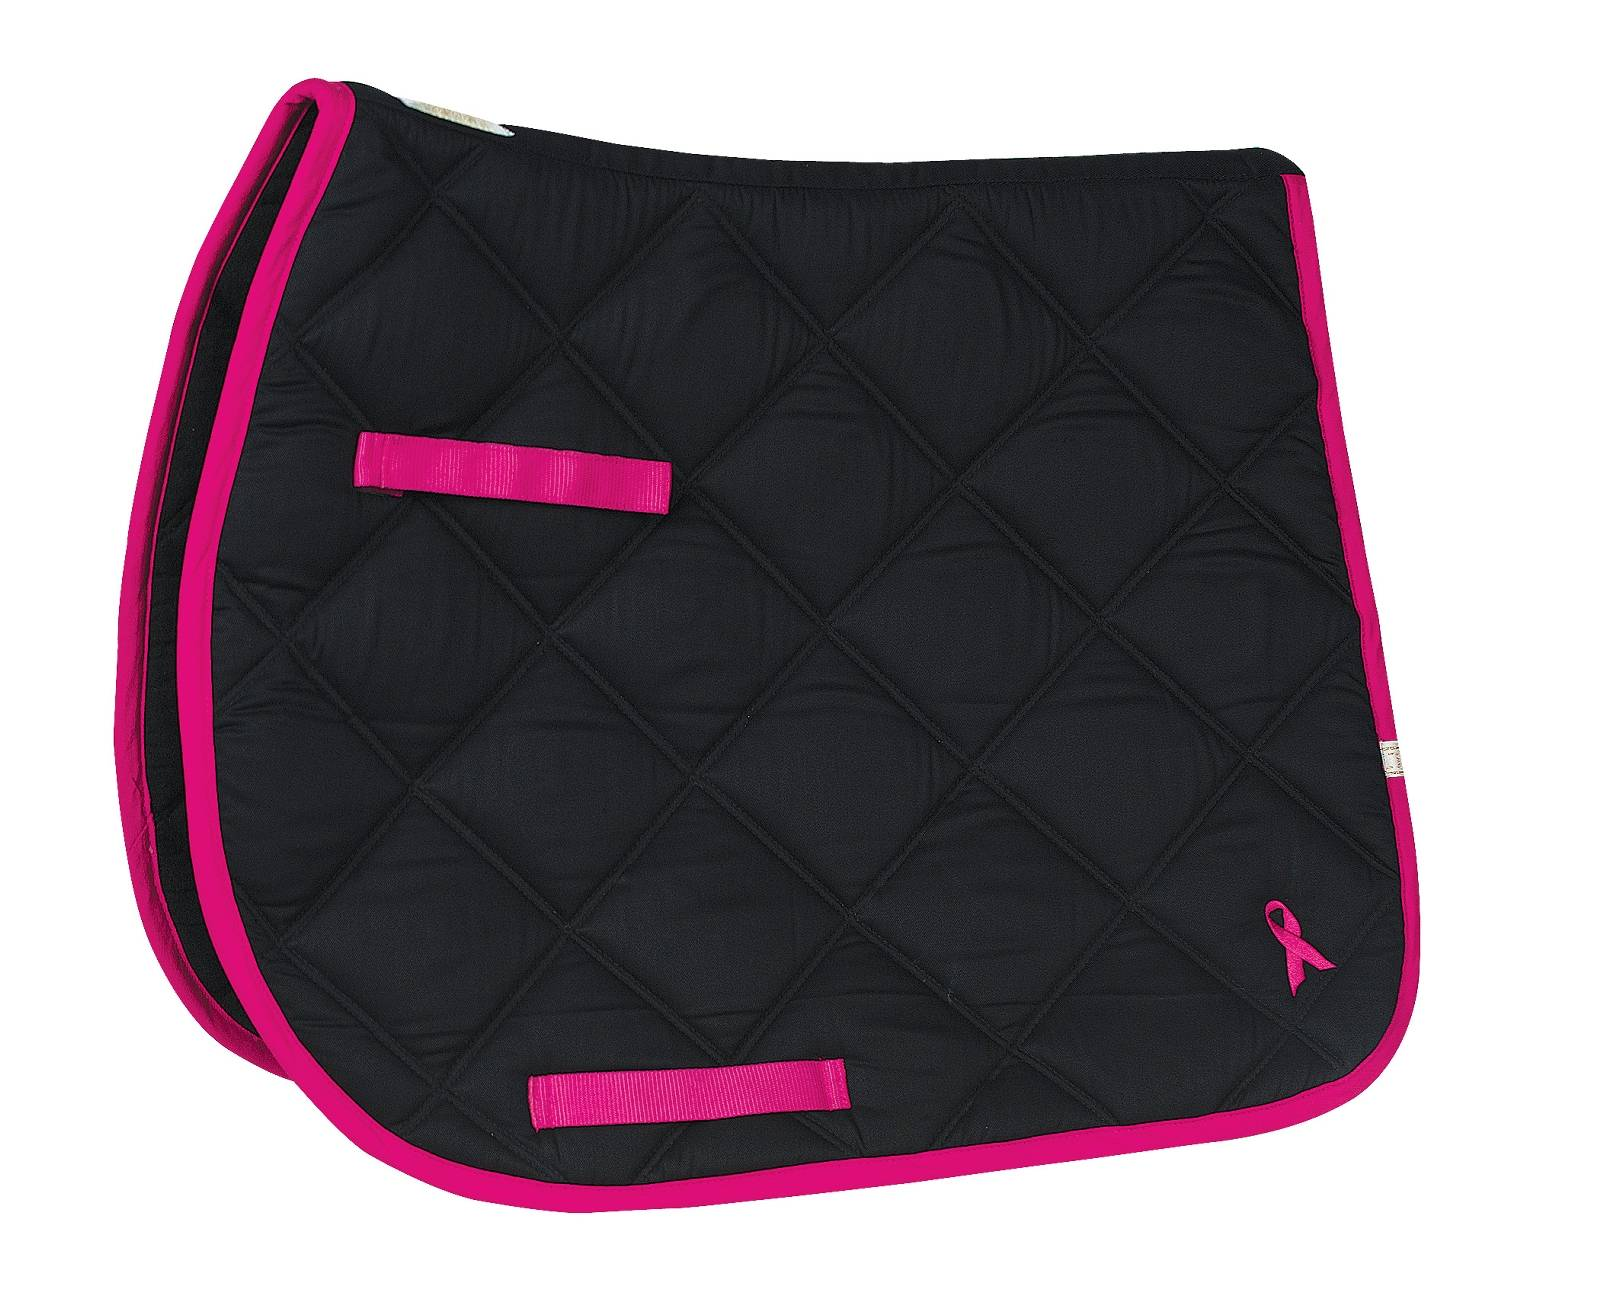 Lettia Black Pad With Single Pink Ribbon - All Purpose